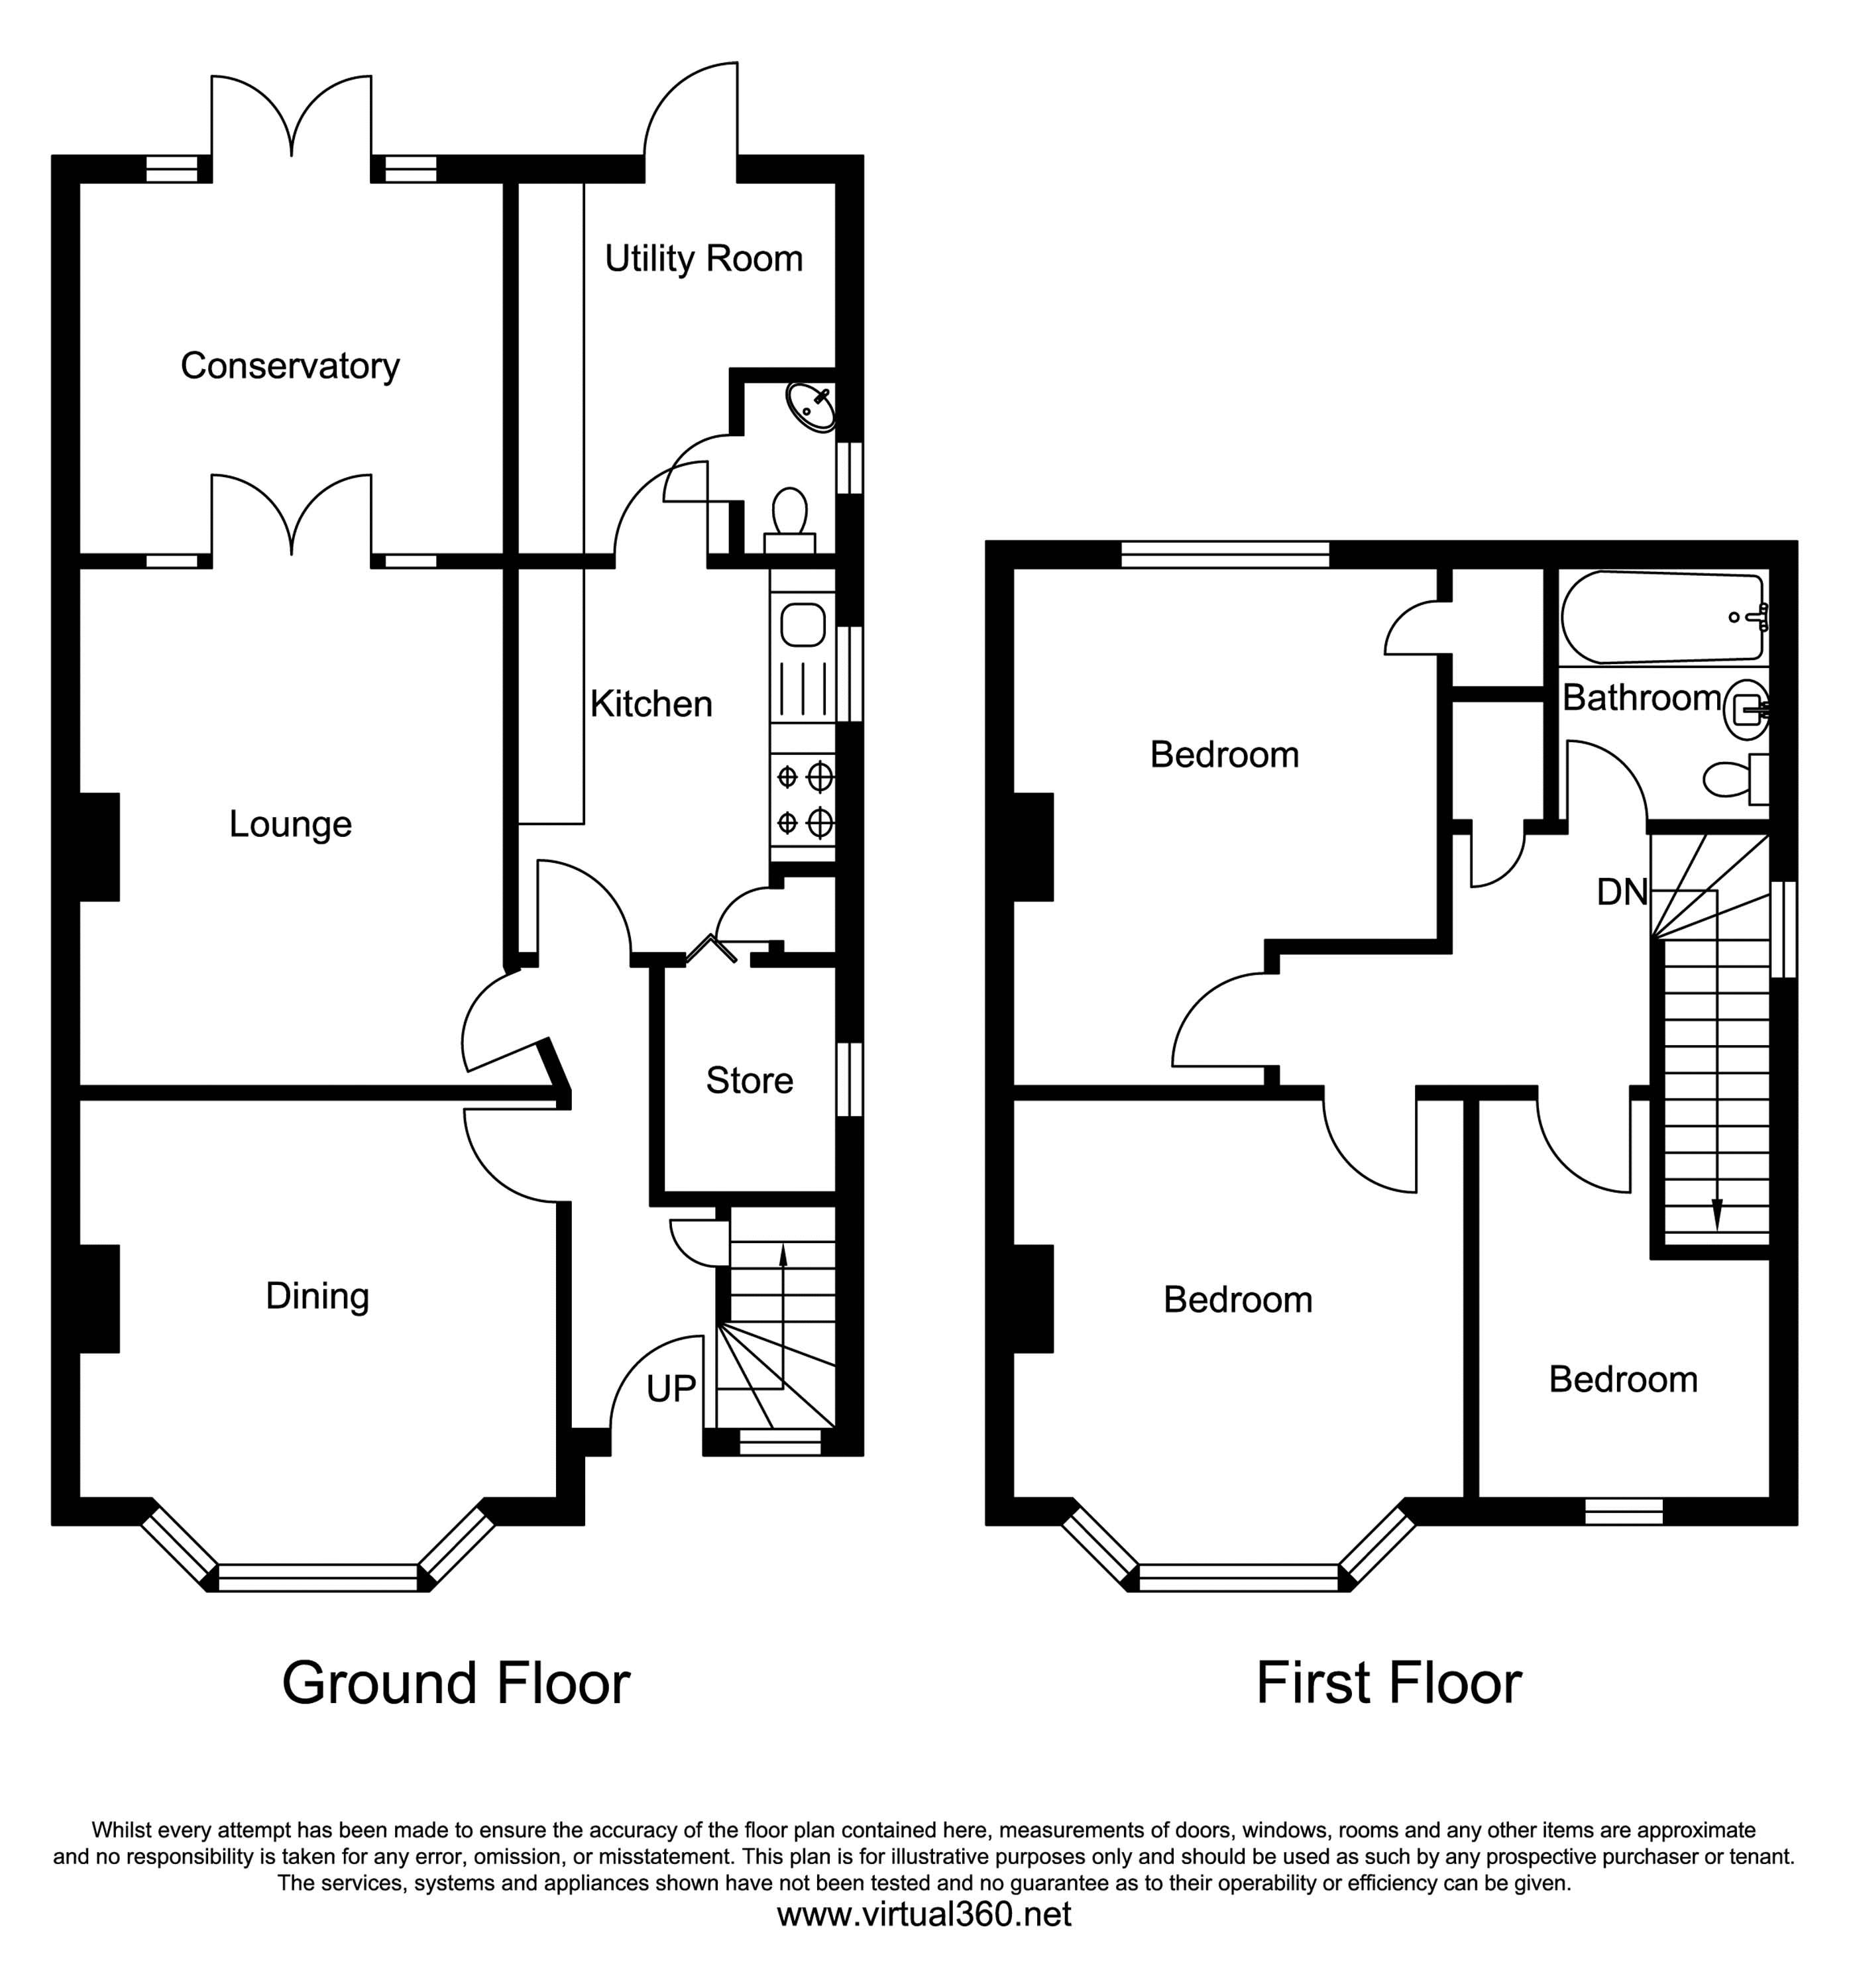 Chertsey Road, Feltham floor plan